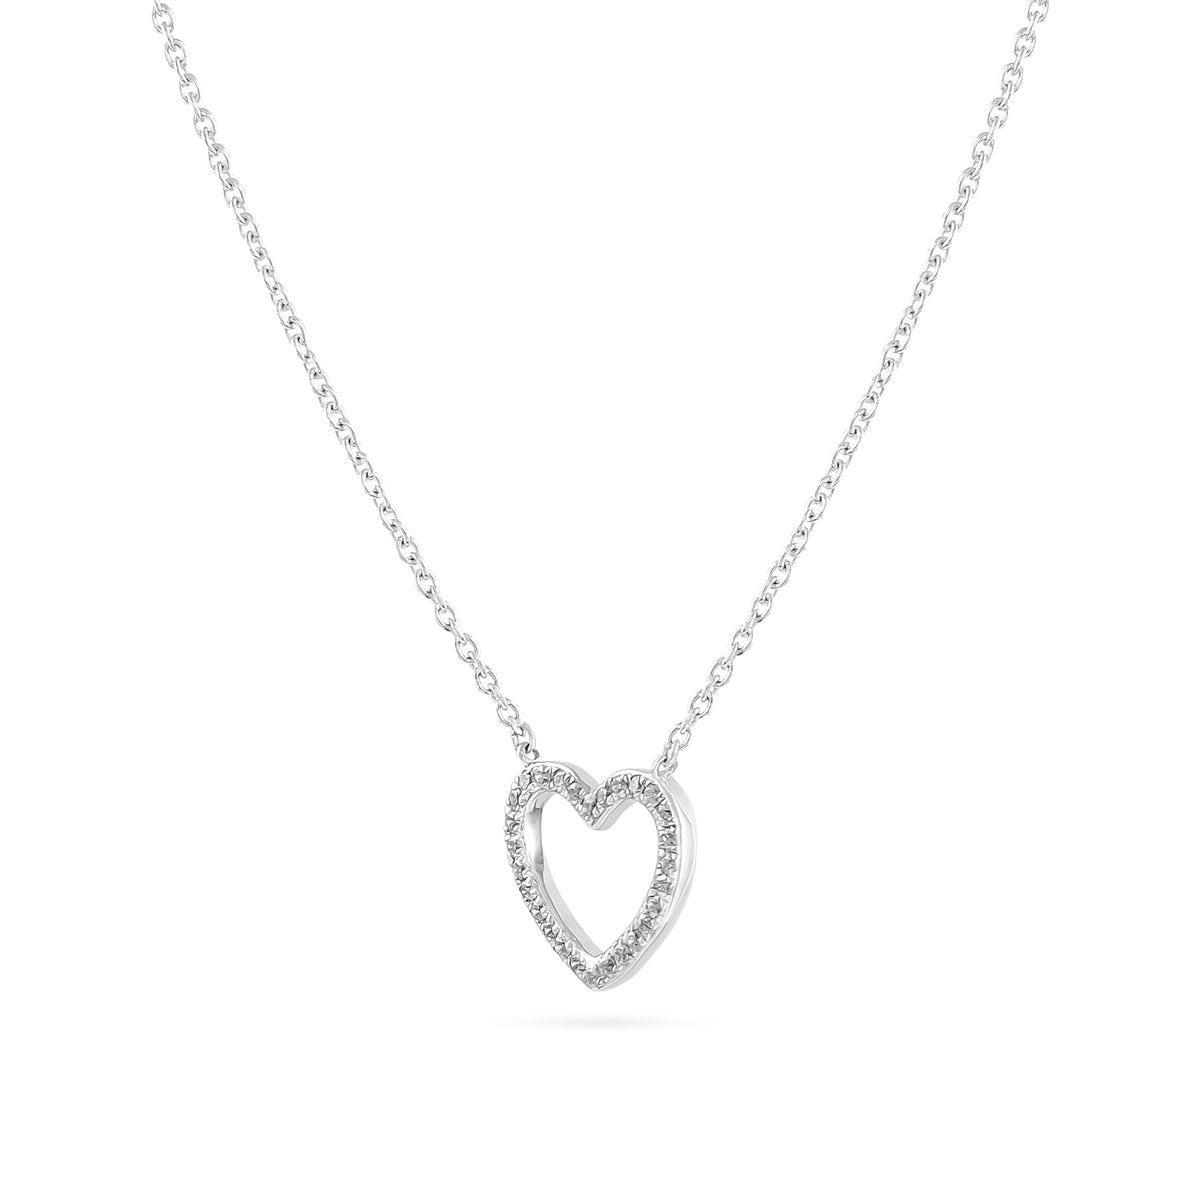 18ct White Gold Diamond Heart Necklace